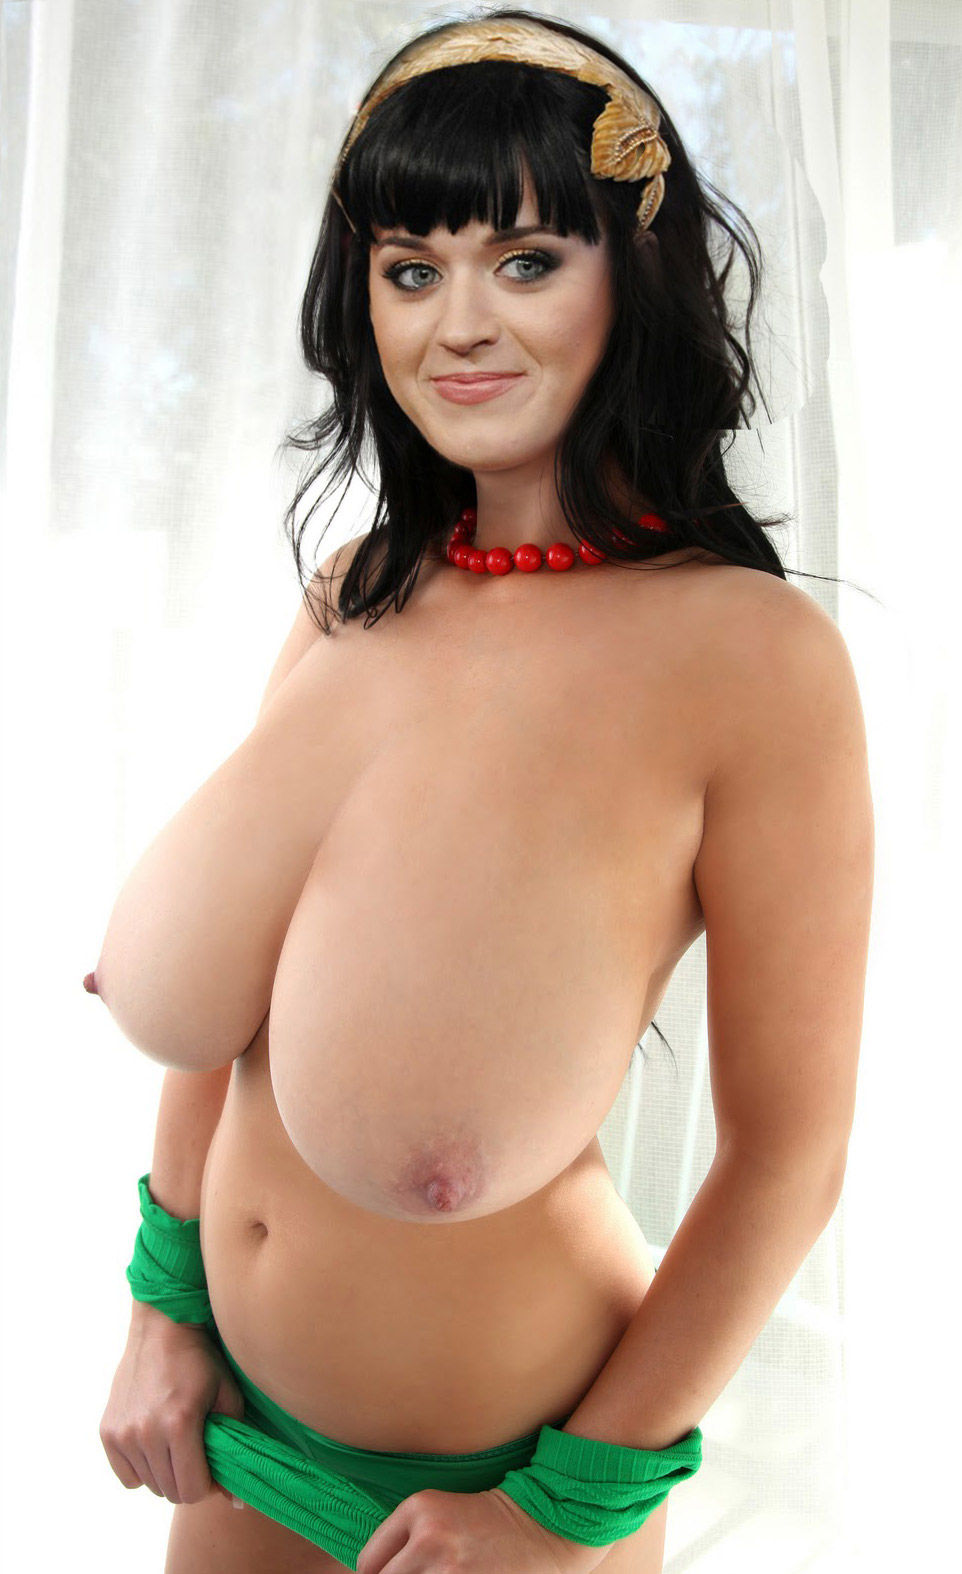 Apologise, actress big boobs images apologise